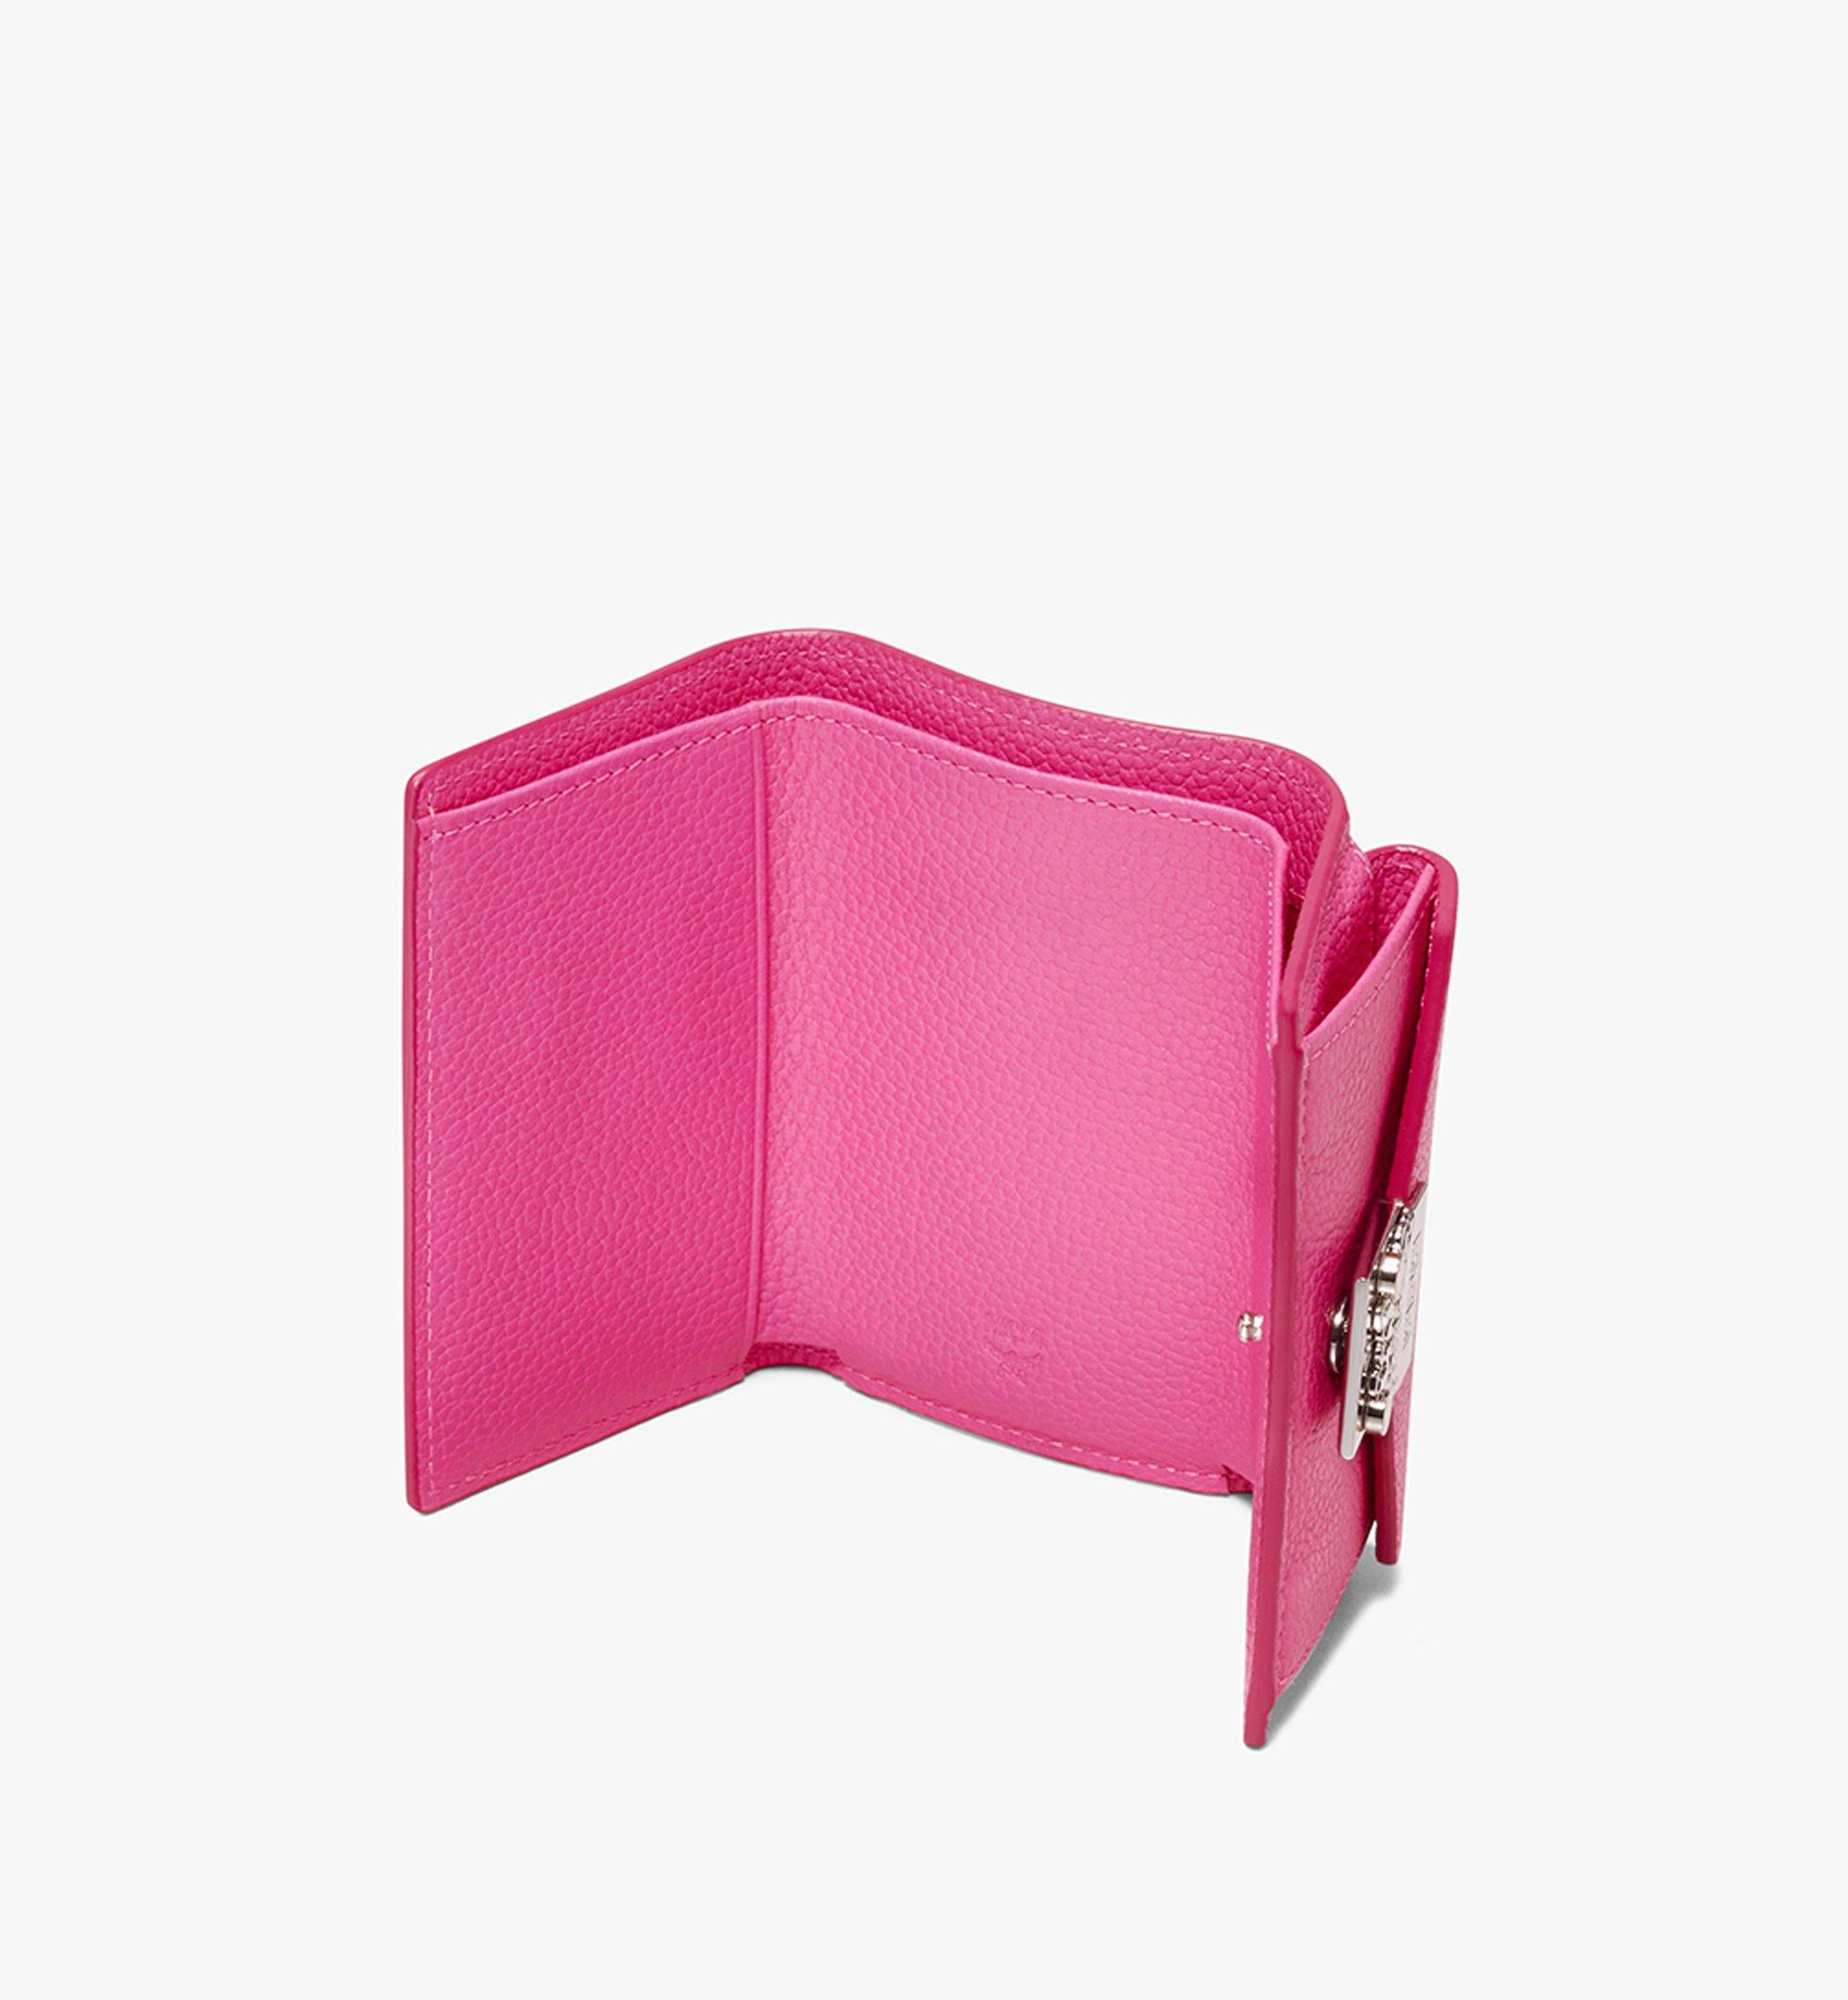 MCM Patricia Three-Fold Wallet in Park Avenue Leather Pink MYA9APA67QS001 Alternate View 3